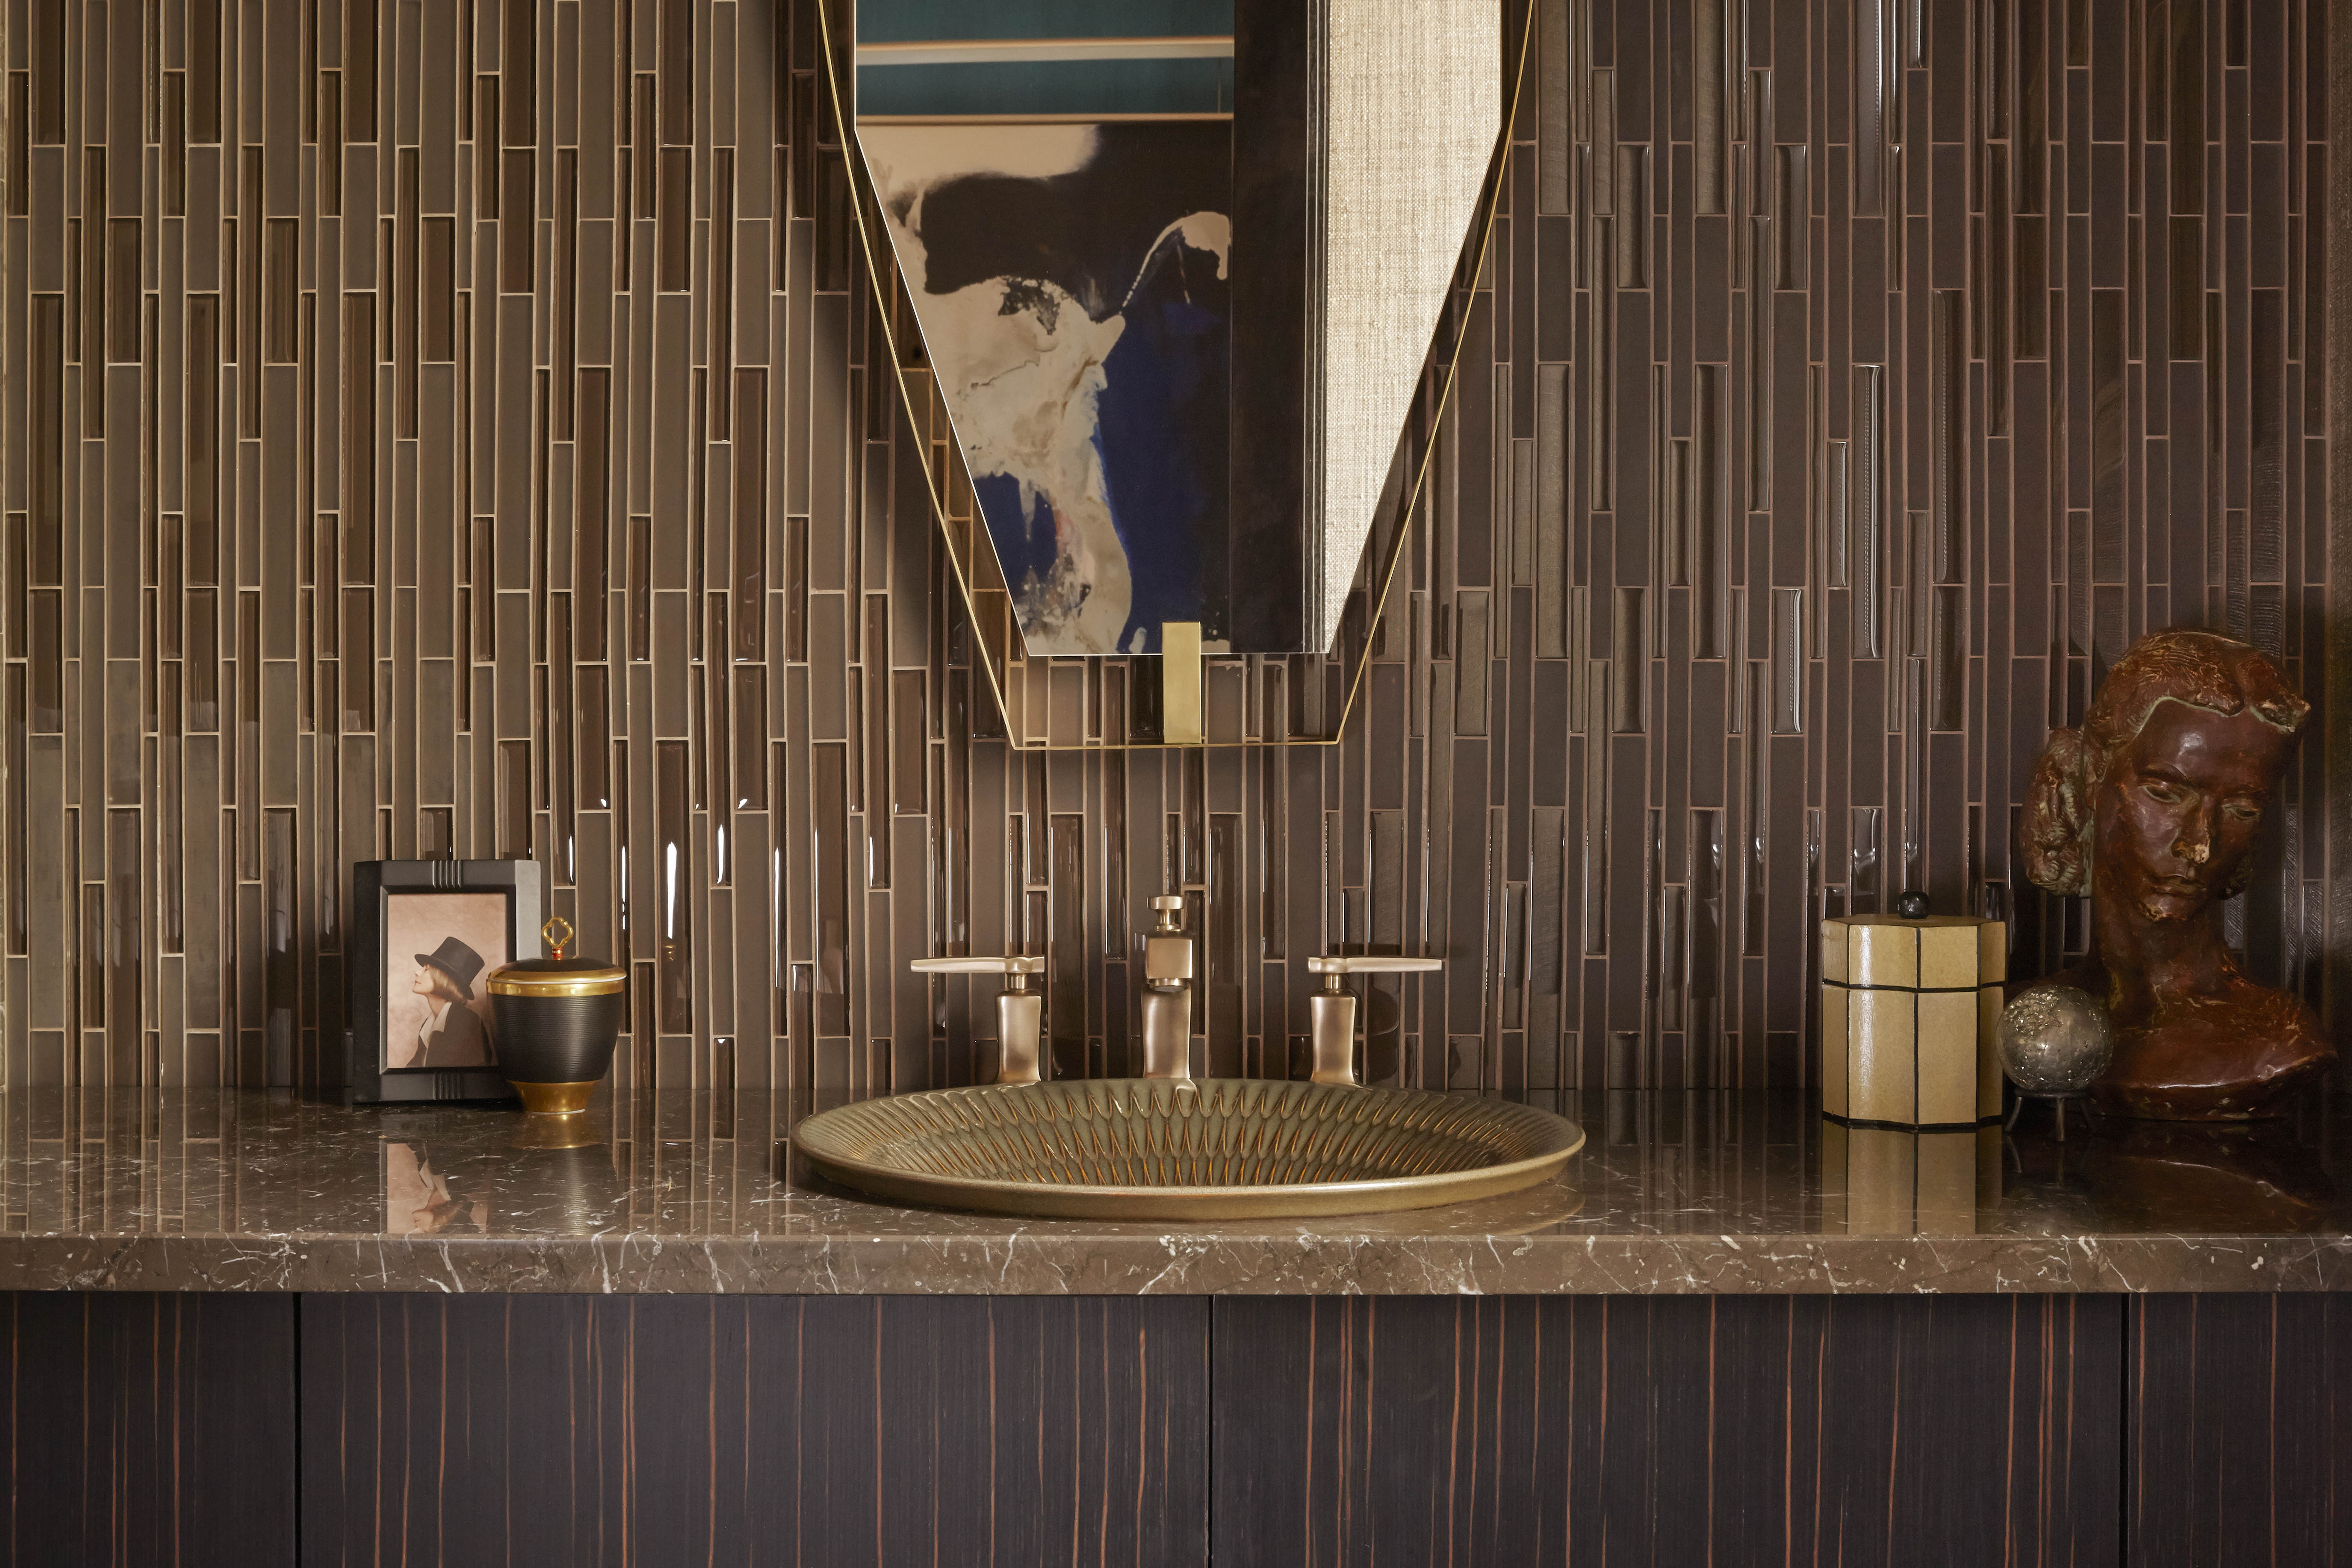 Derring™ sink     Margaux® faucet     Brown and bronze finishes throughout the space have a warm, natural feel.